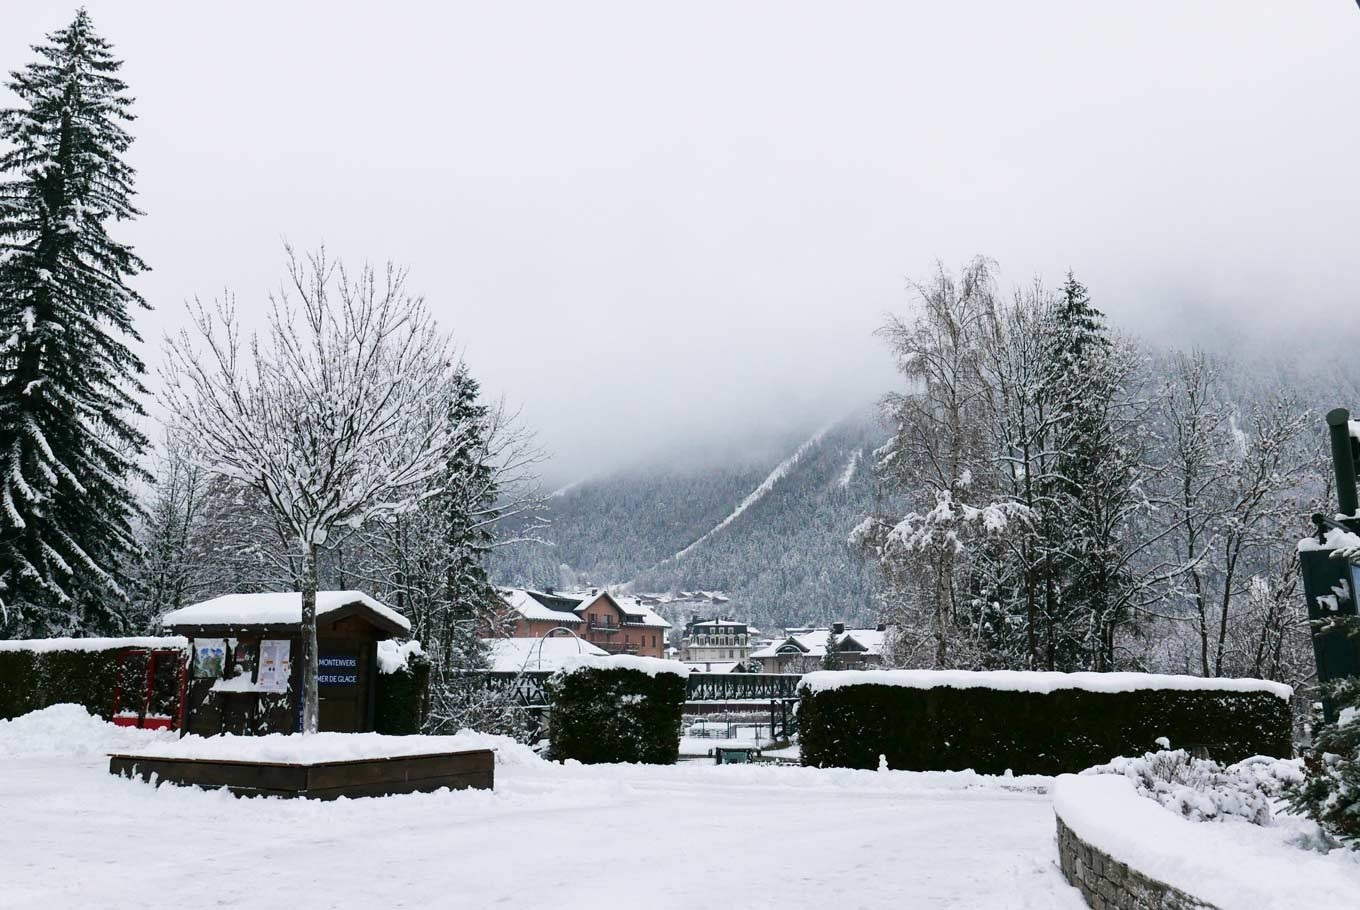 Fresh snow at the city of Chamonix Mont-Blanc, ready to greet its winter visitors mid-December 2017.